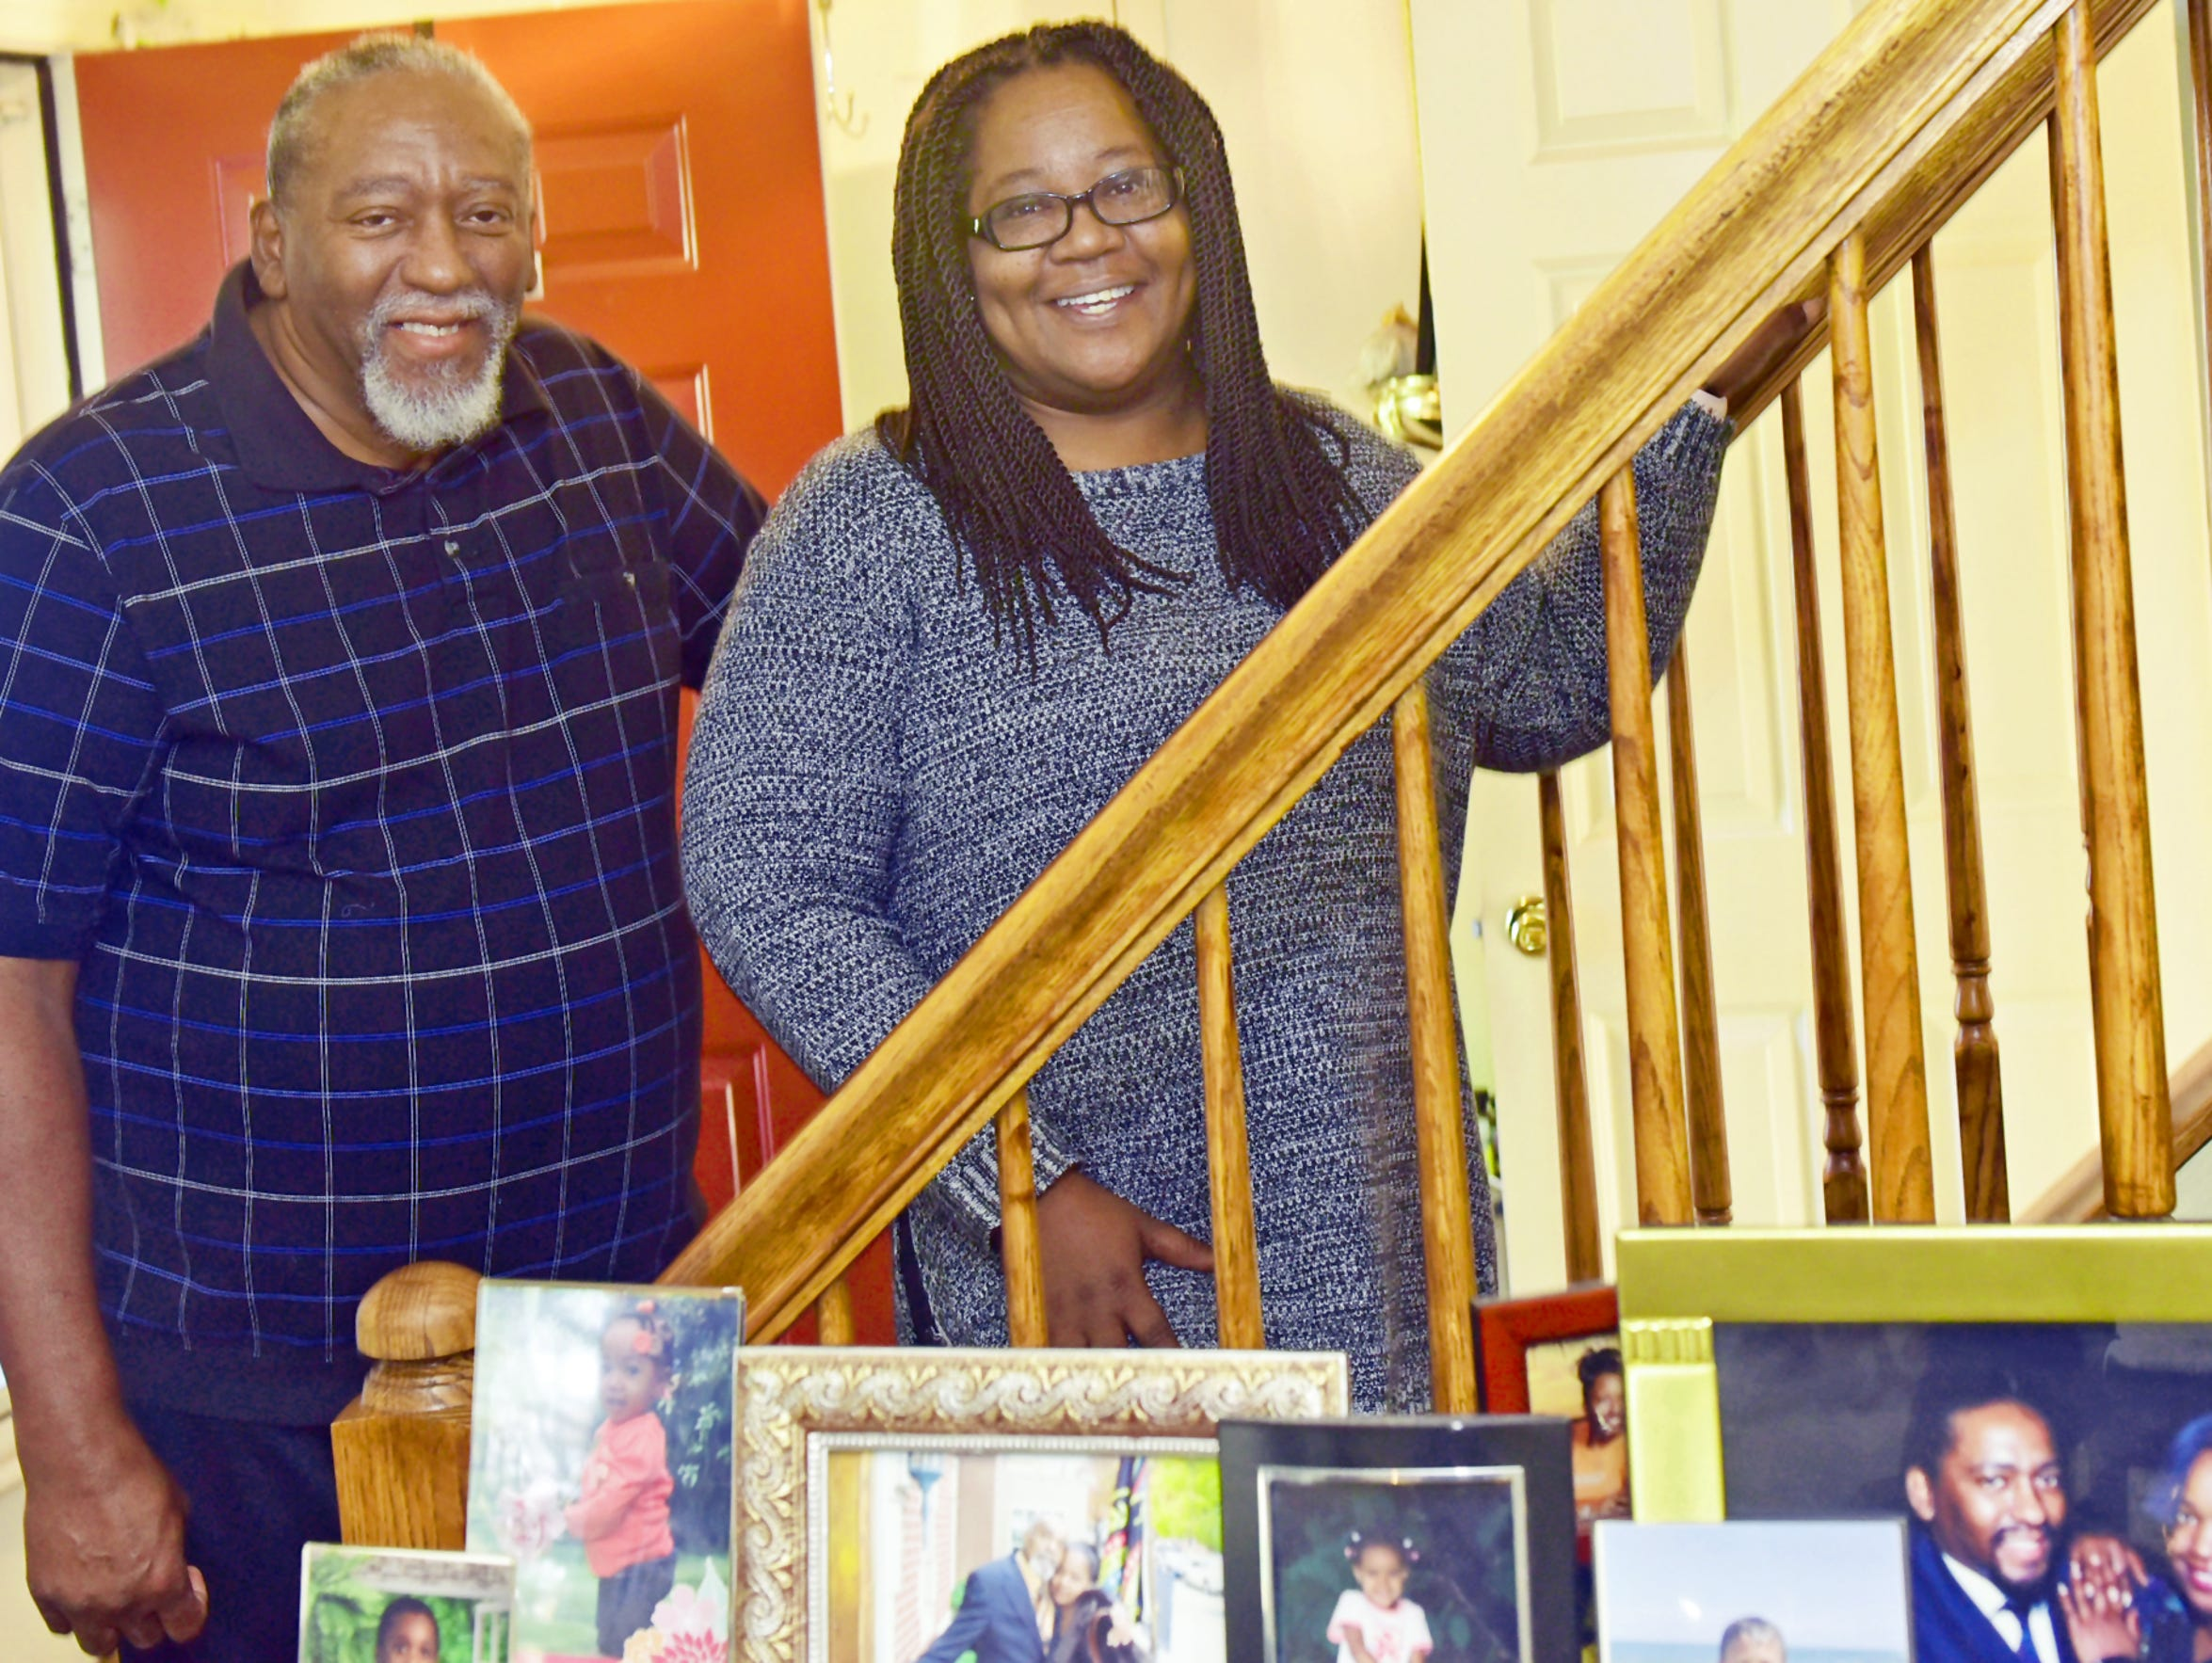 James and Lydia Dupree welcome foster kids to their